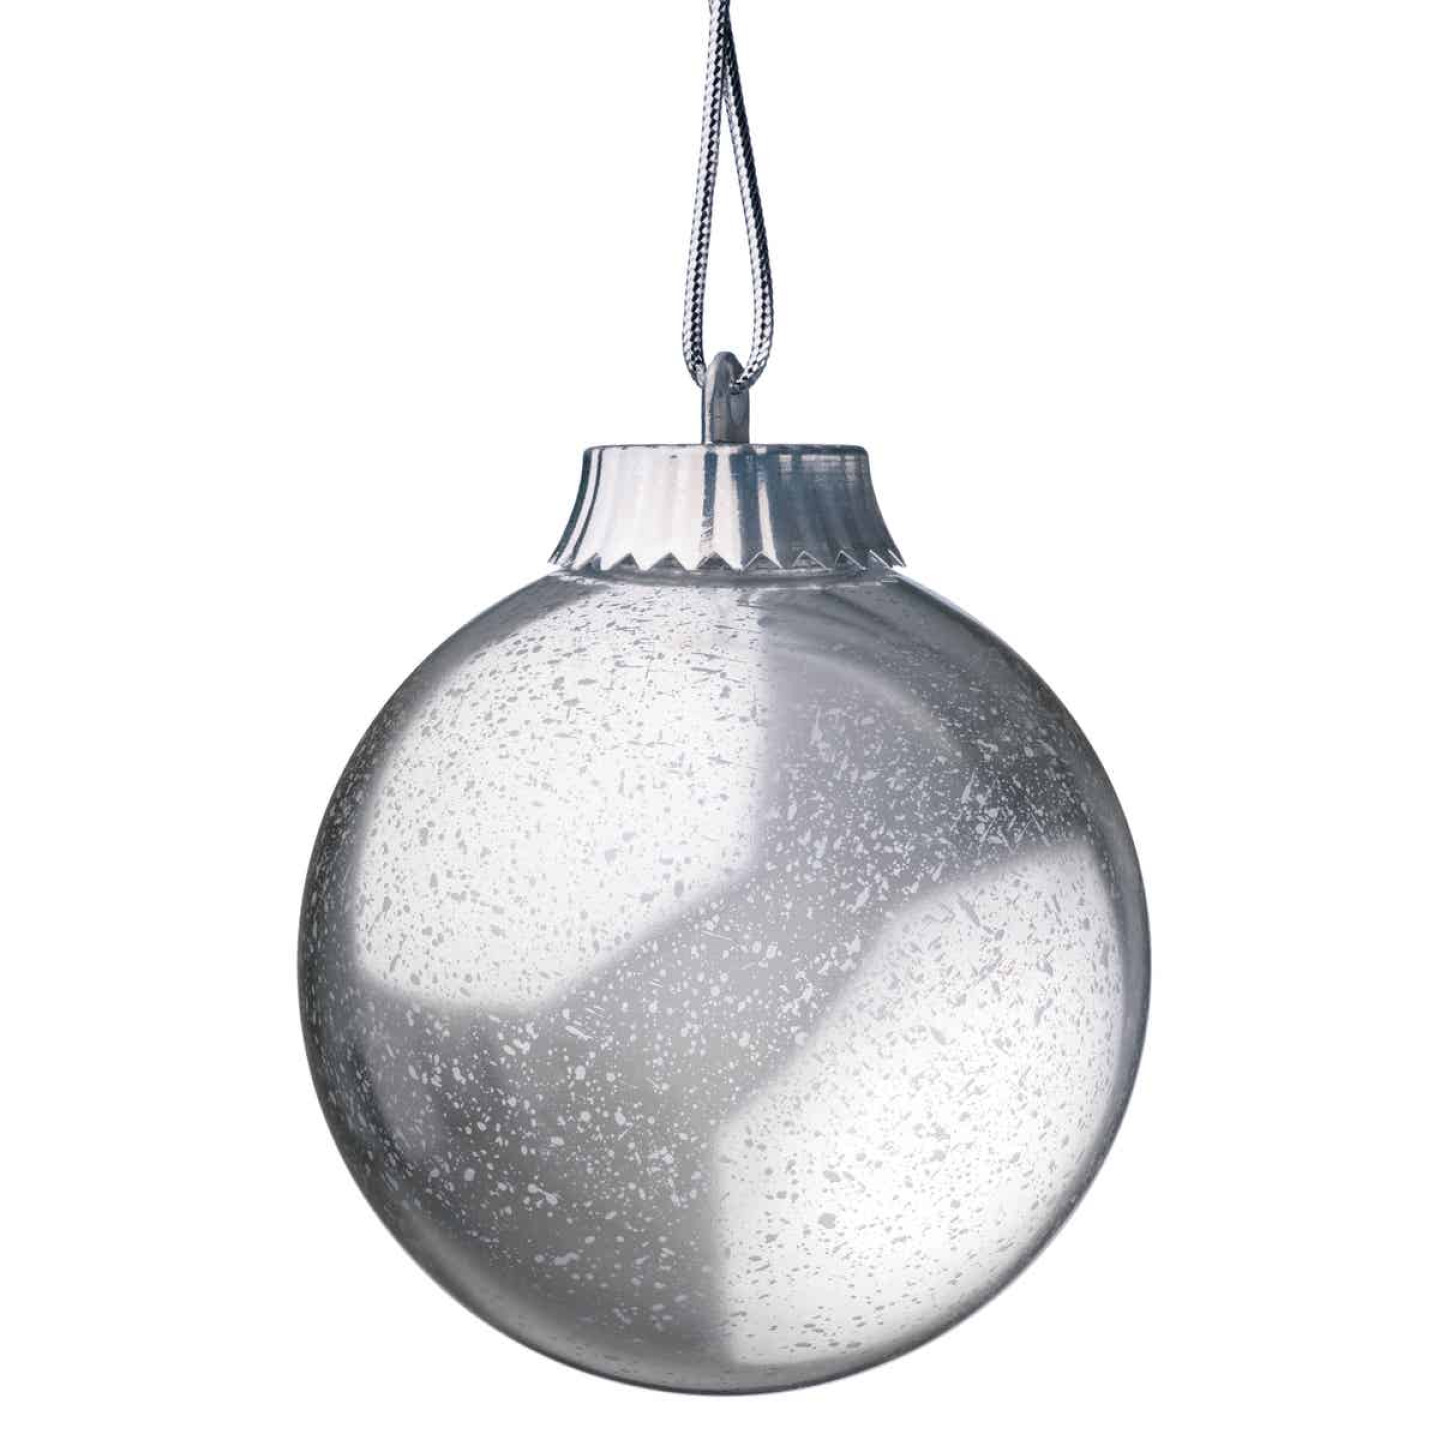 Xodus 5 In. Shatter Resistant LED Outdoor Christmas Ornament Image 6